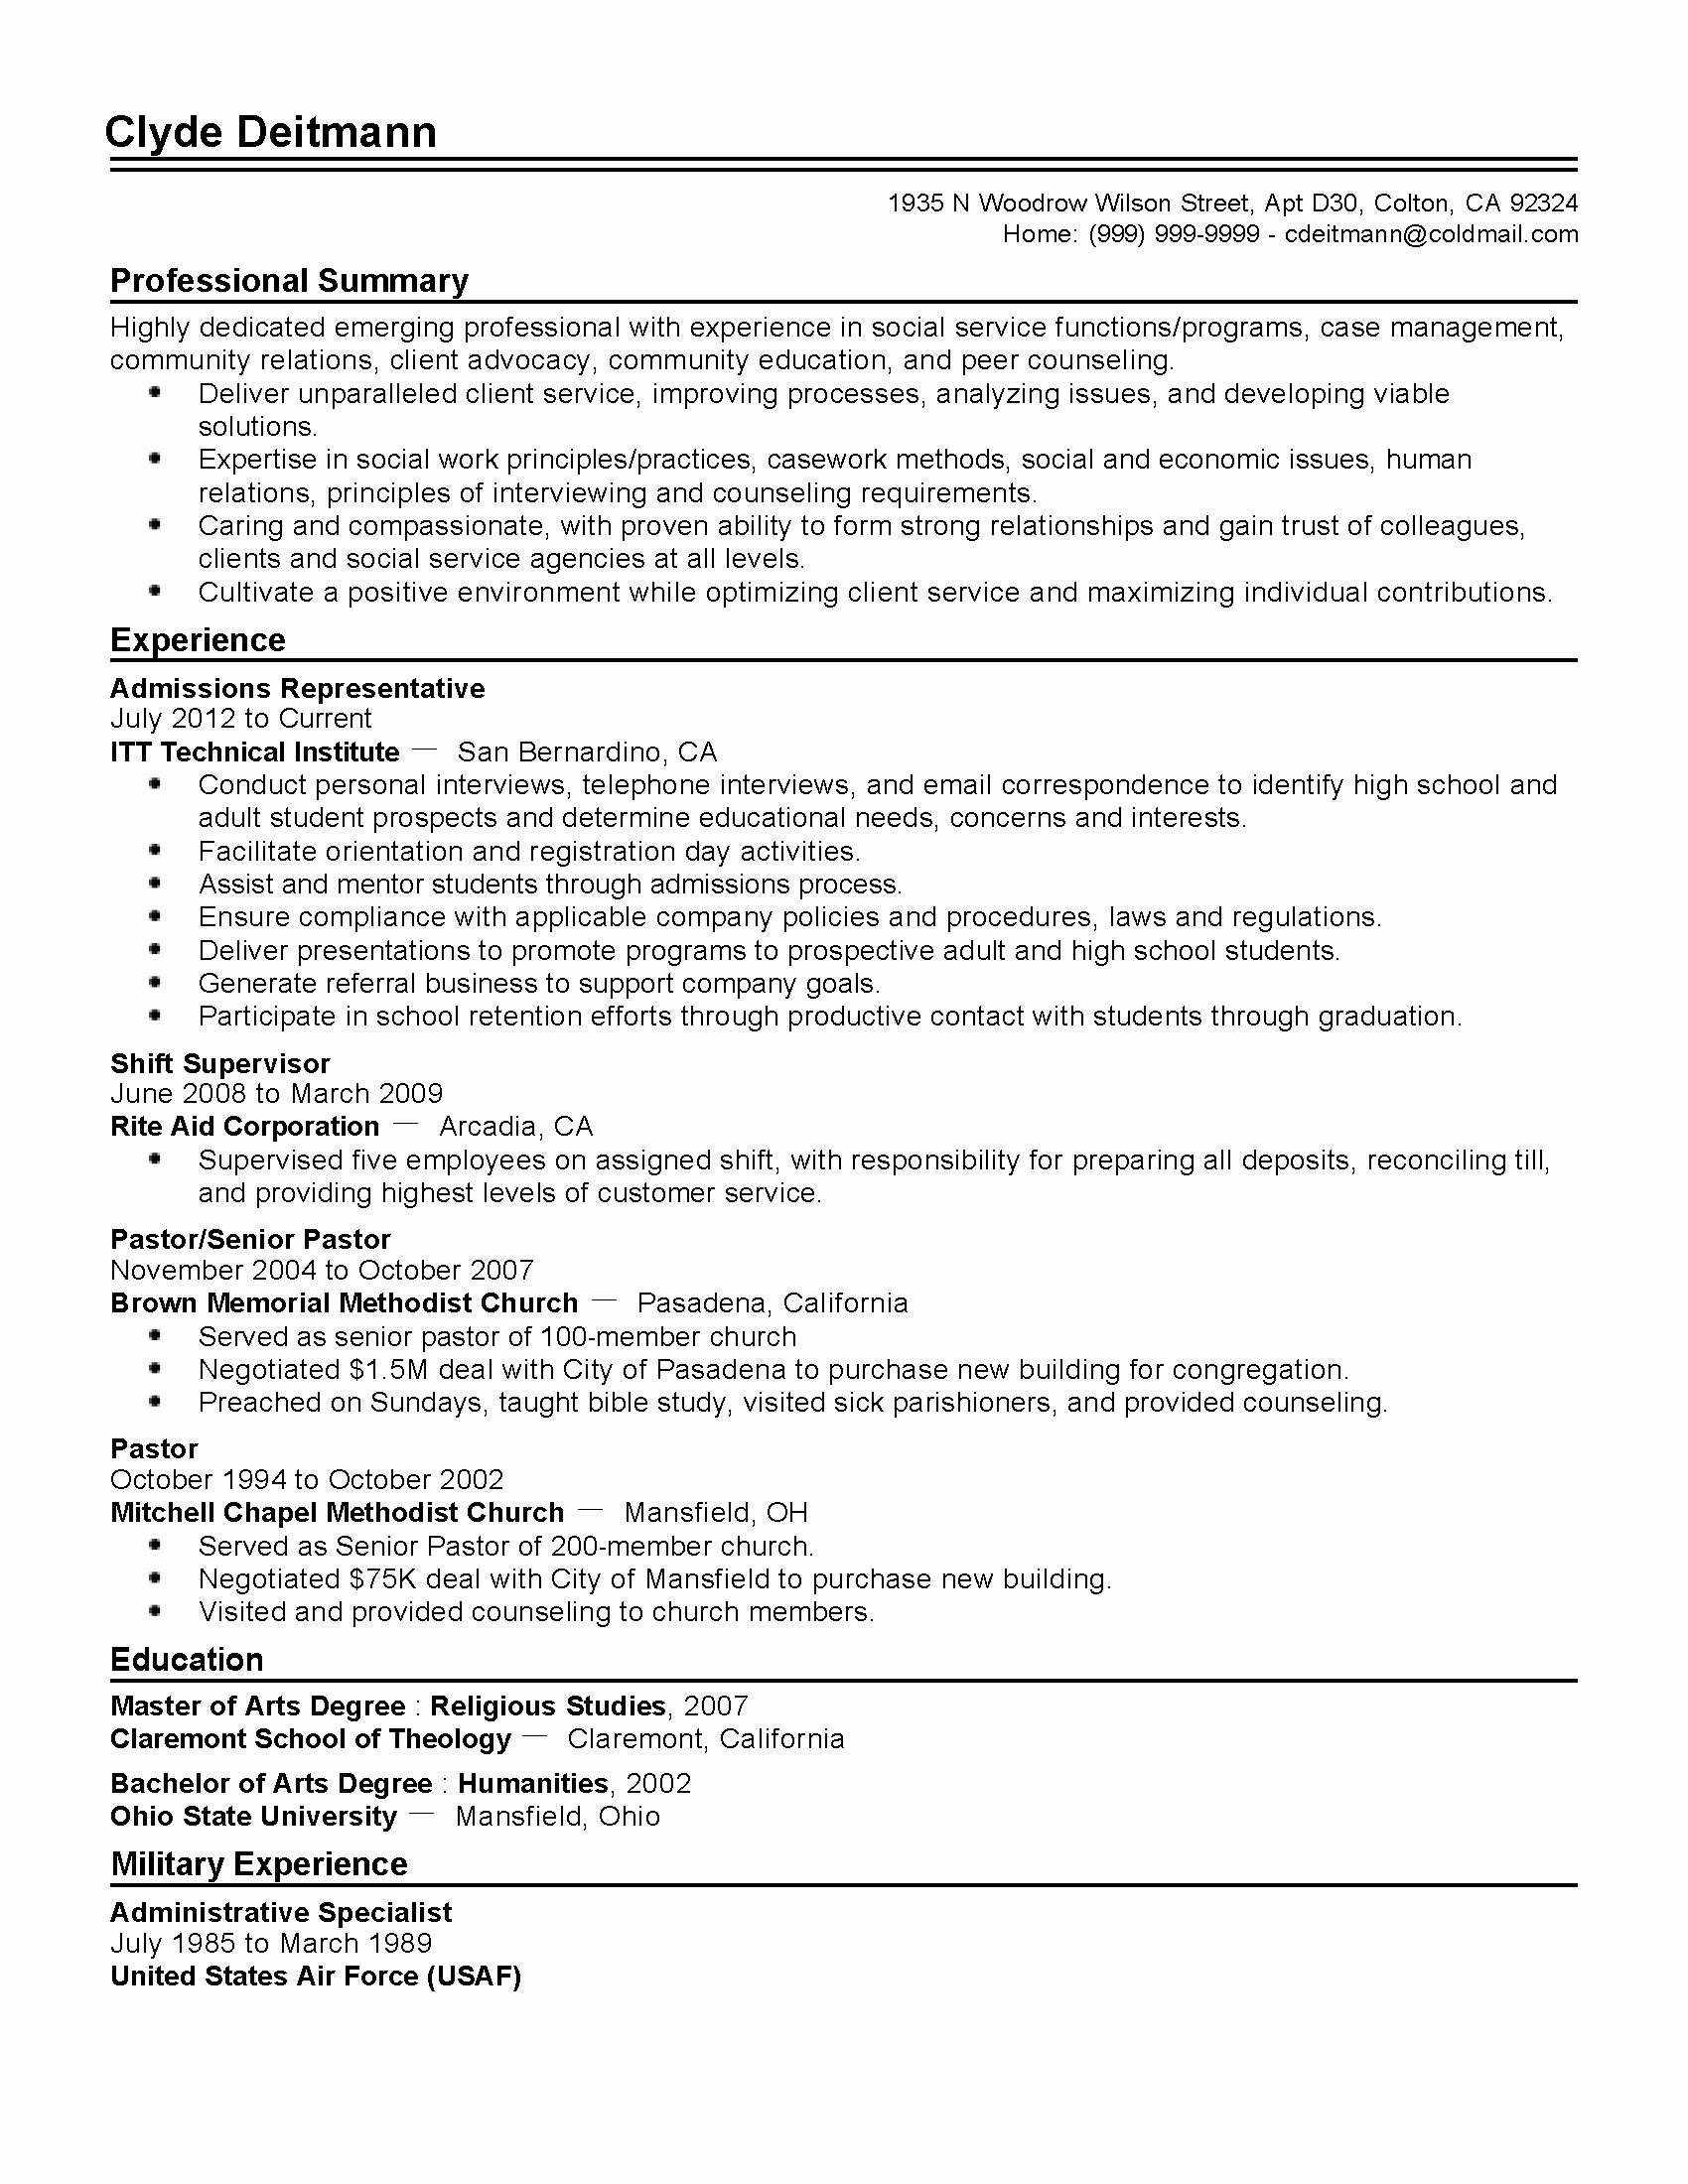 Professional Admissions Representative Templates to